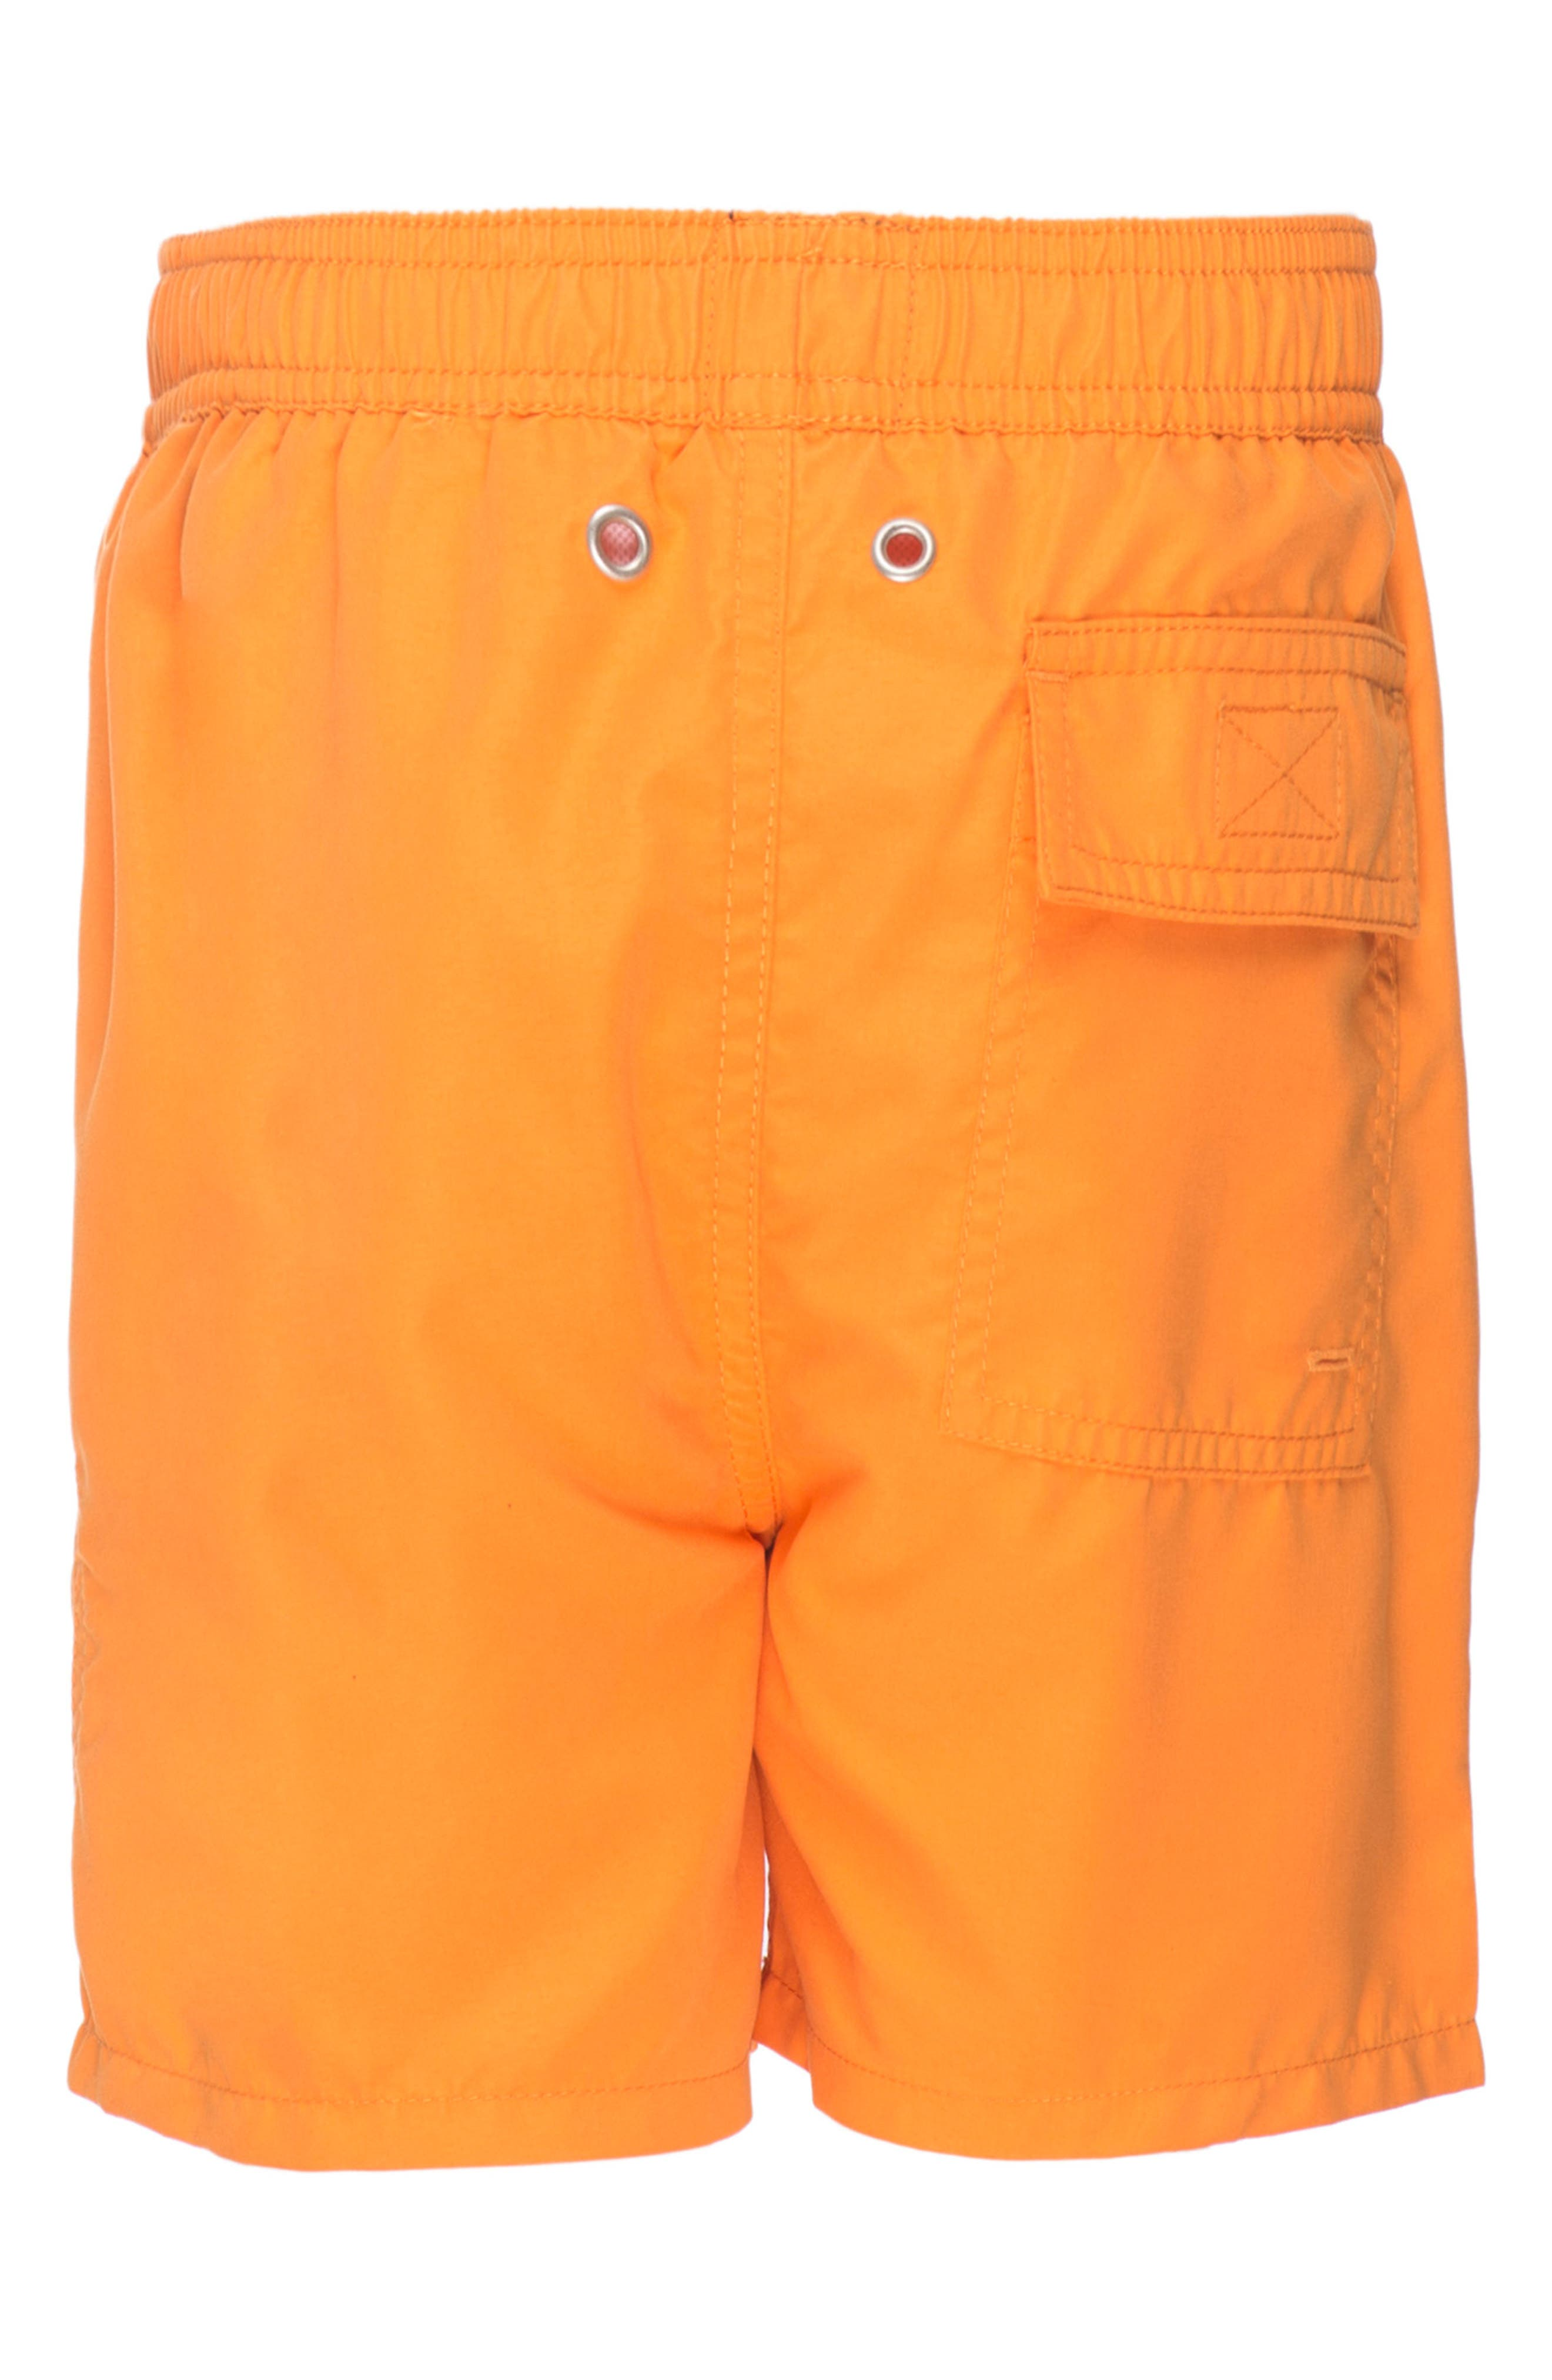 Solid Swim Trunks,                             Alternate thumbnail 4, color,                             BAKED ORANGE